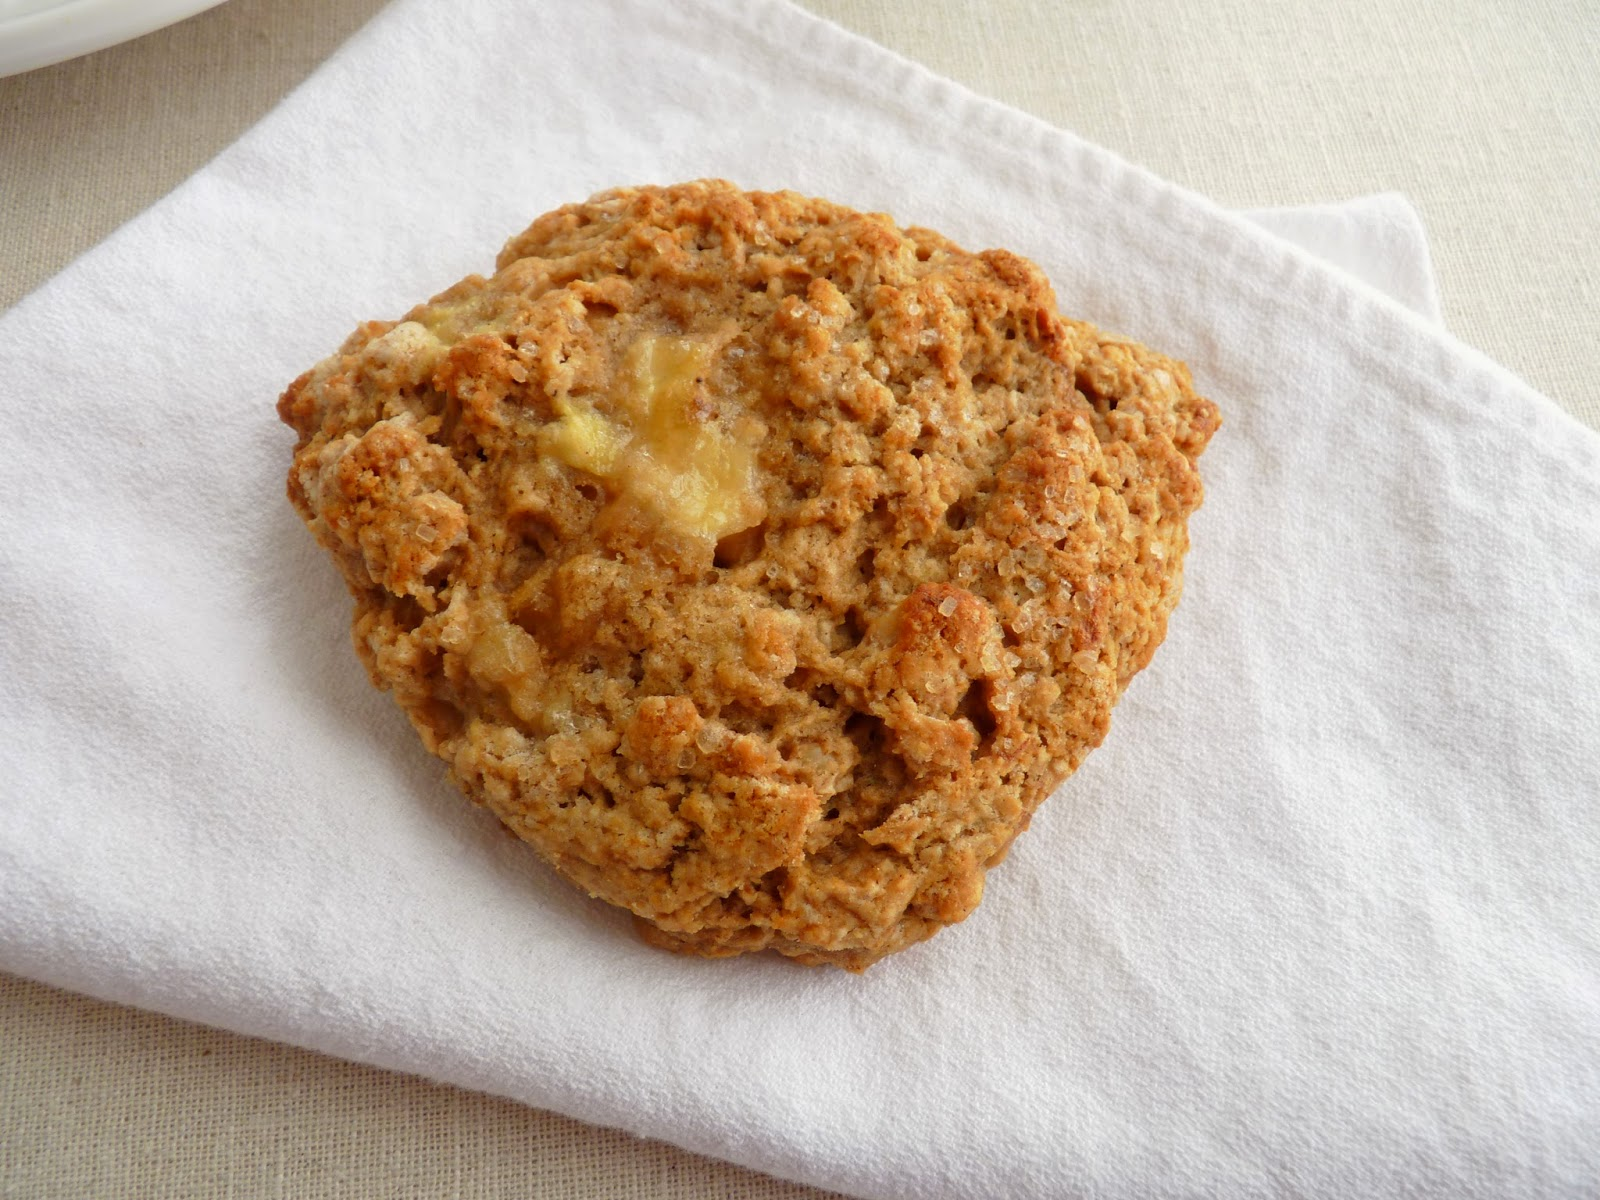 pastry studio: Banana Walnut Scones